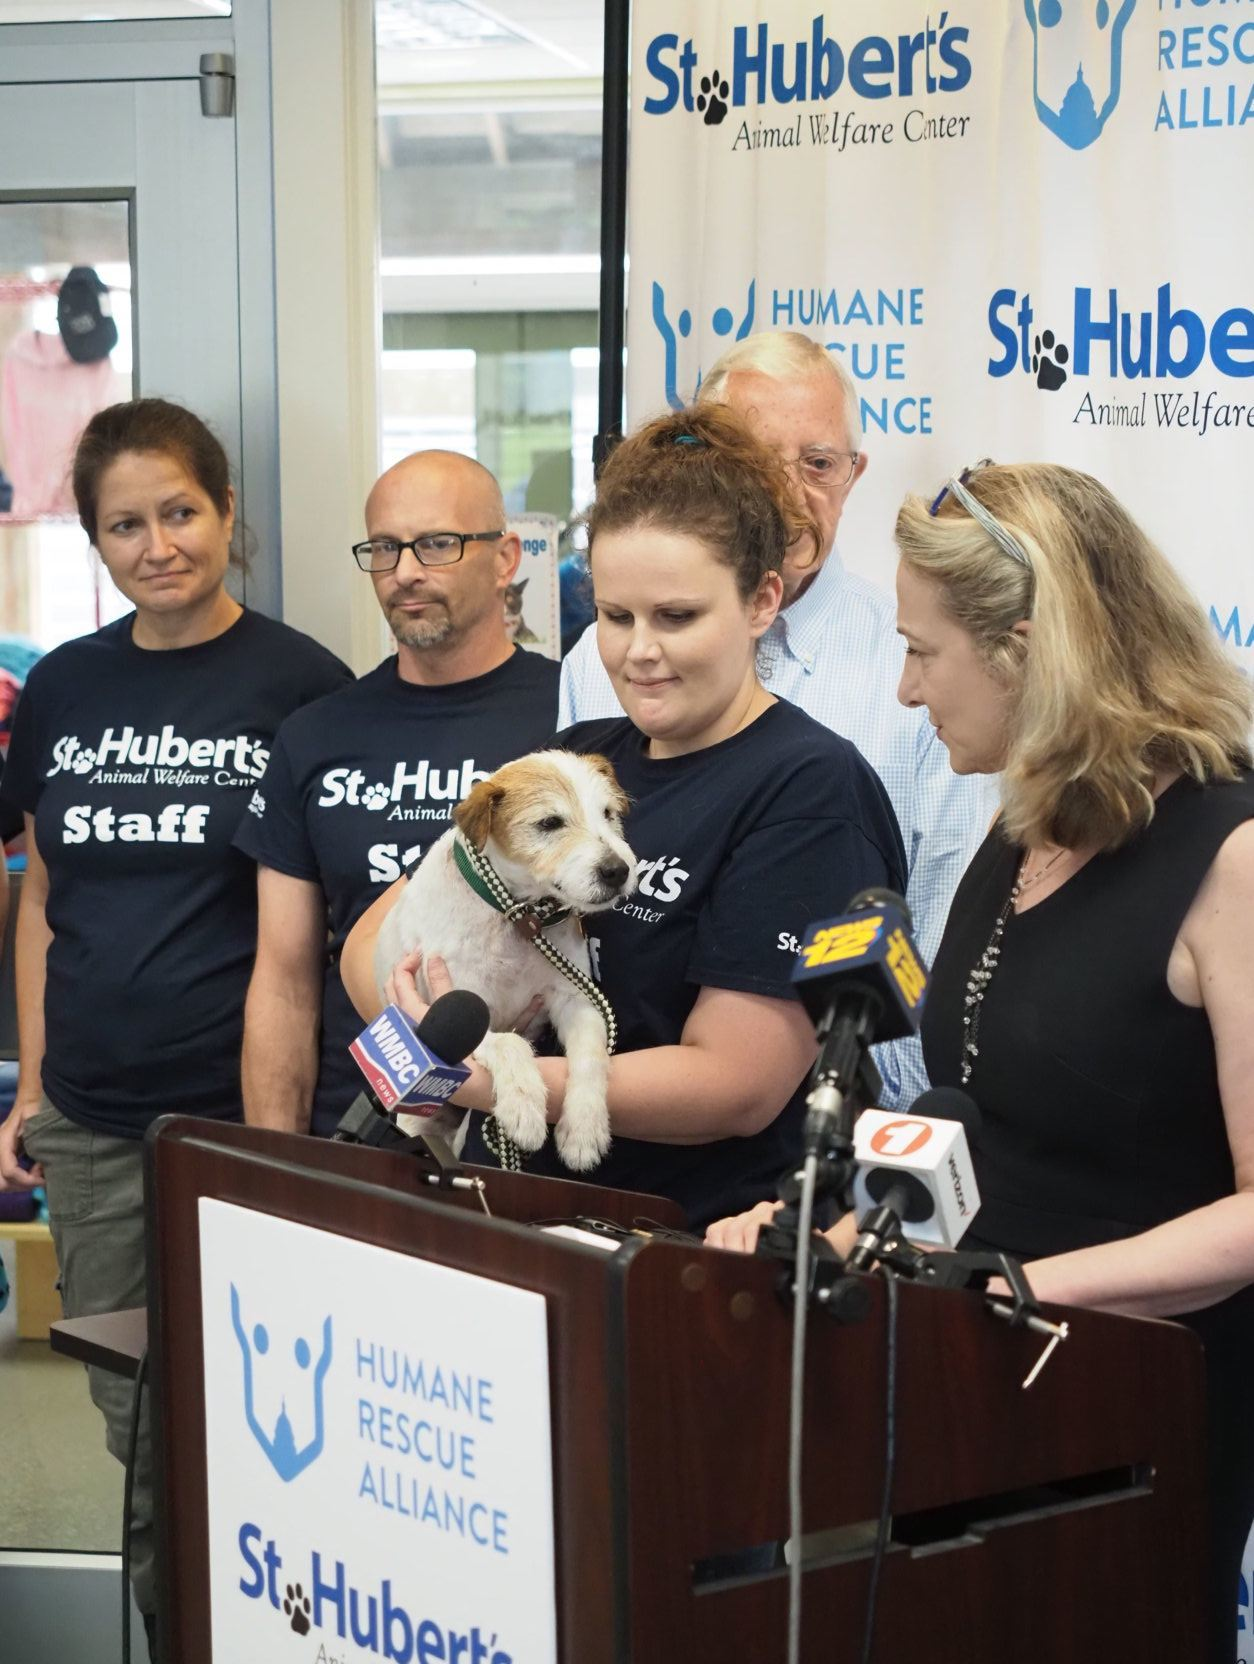 St. Hubert's Animal Welfare staff